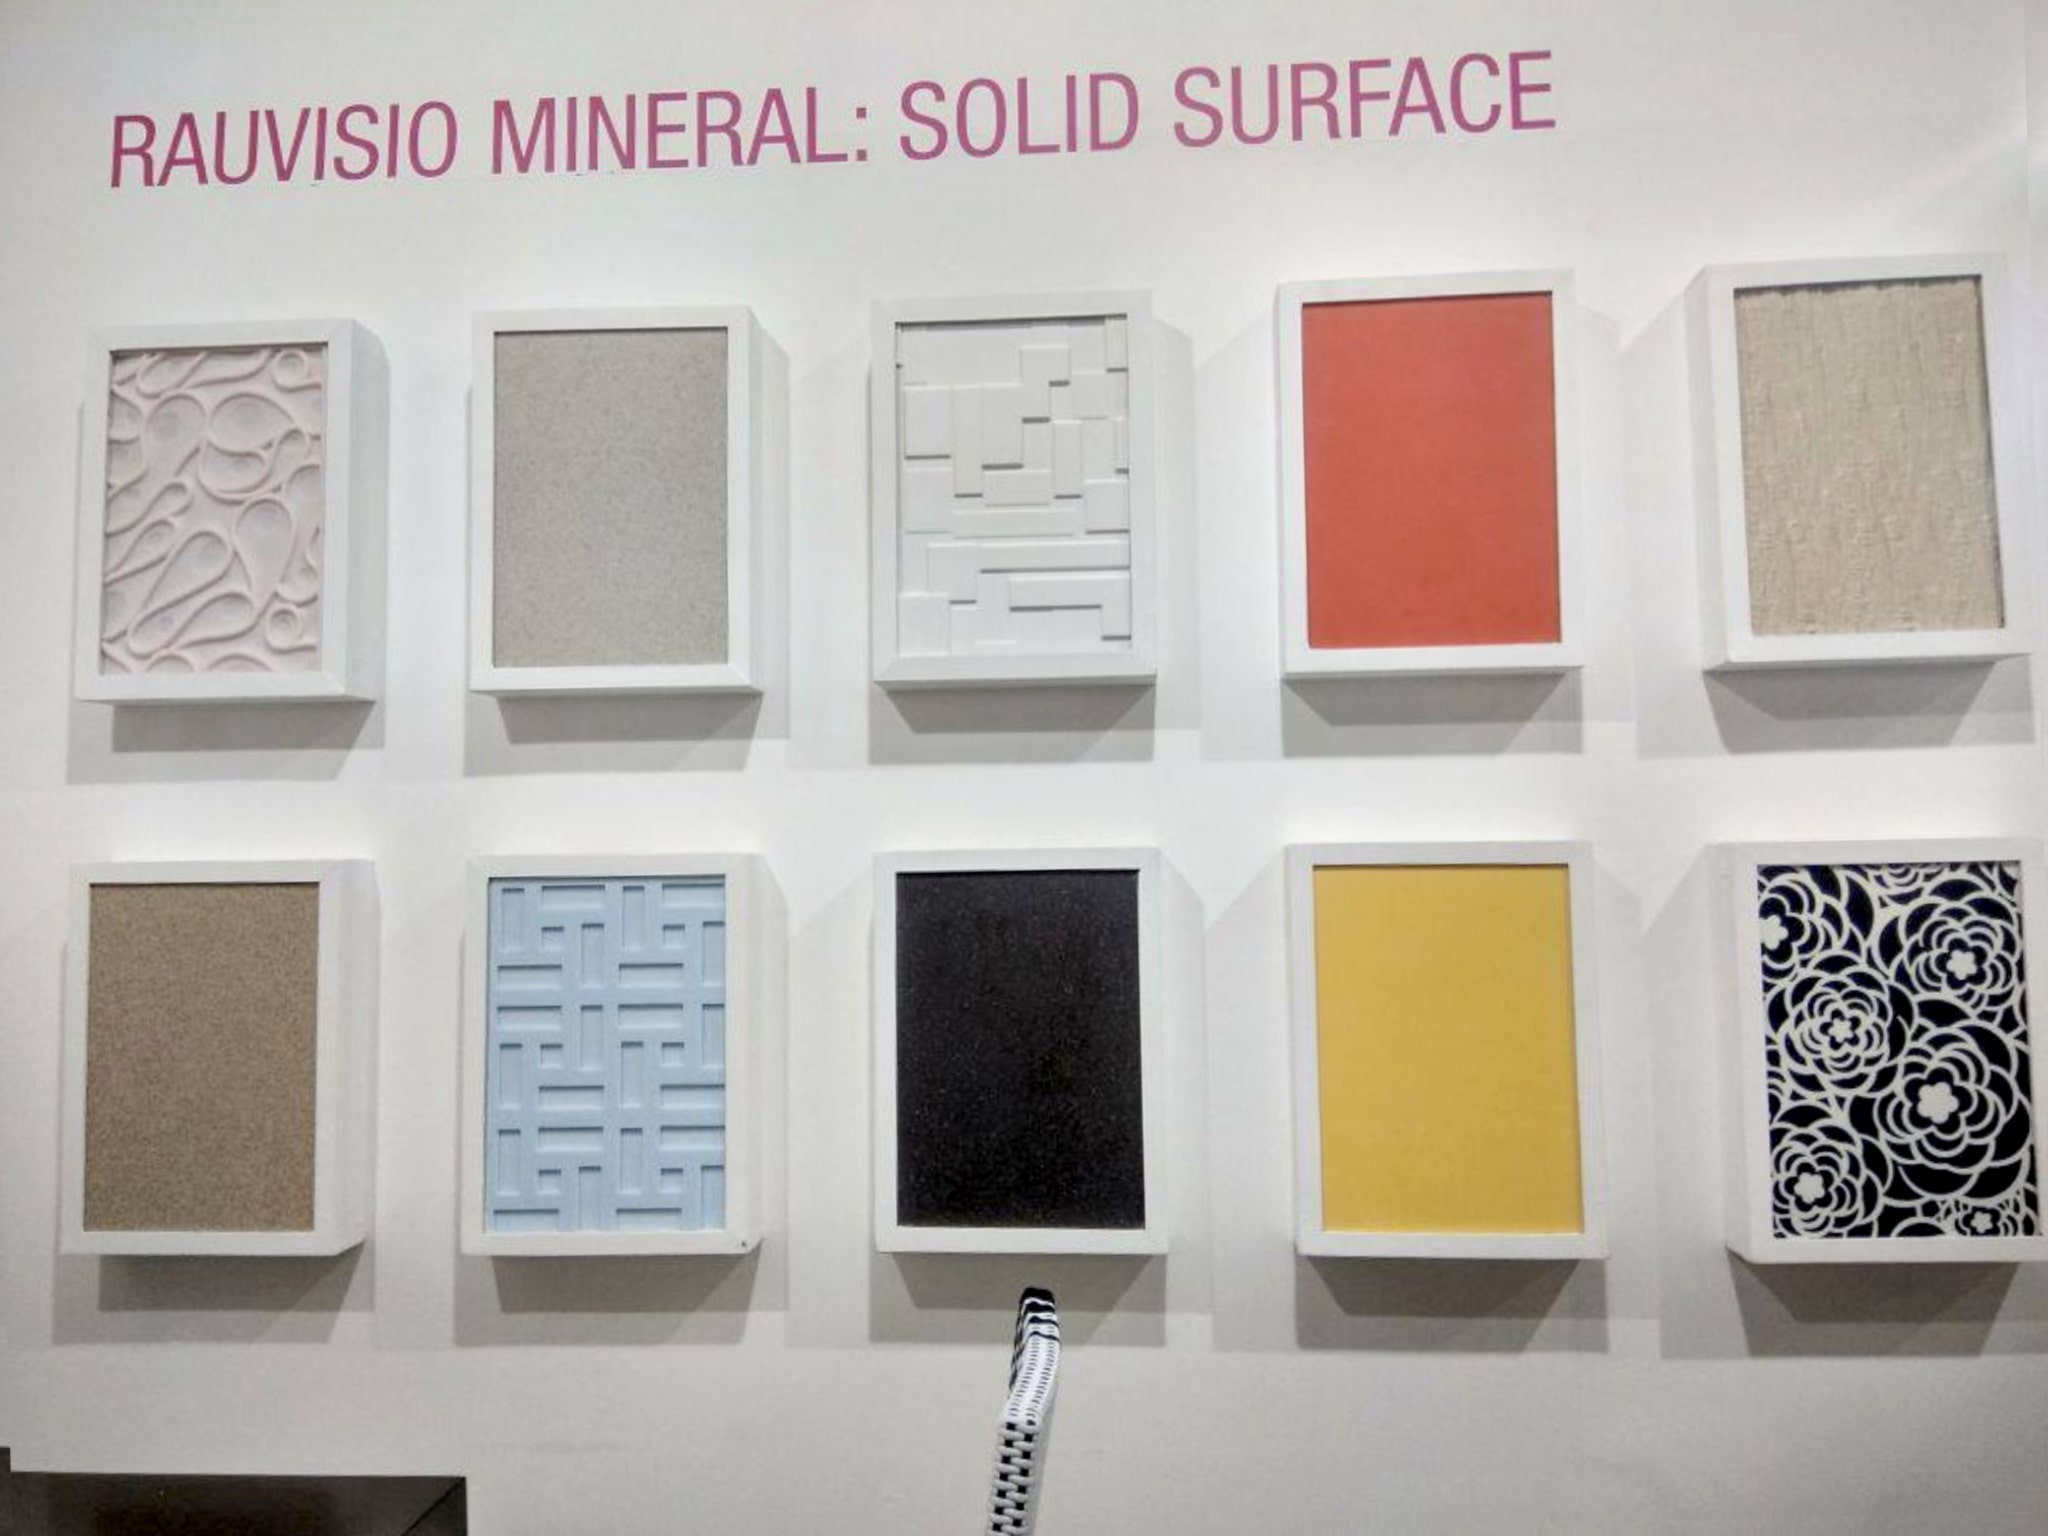 rehau mineral solid surface